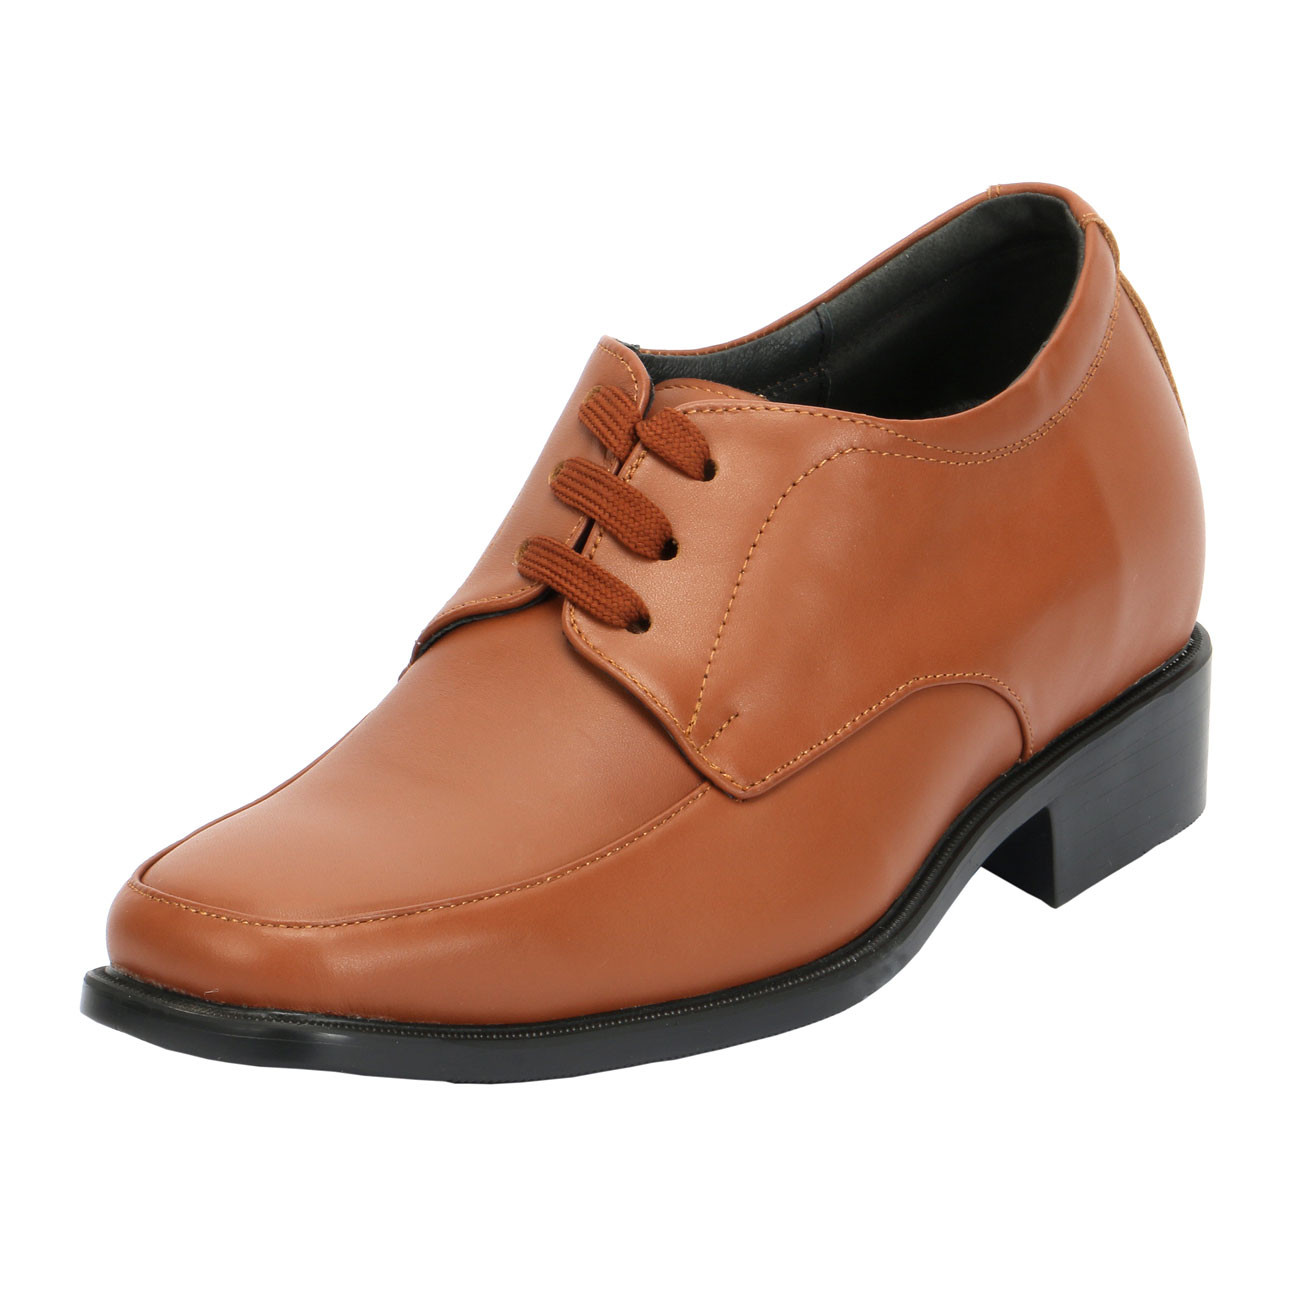 Guys shoes for increasing height-1